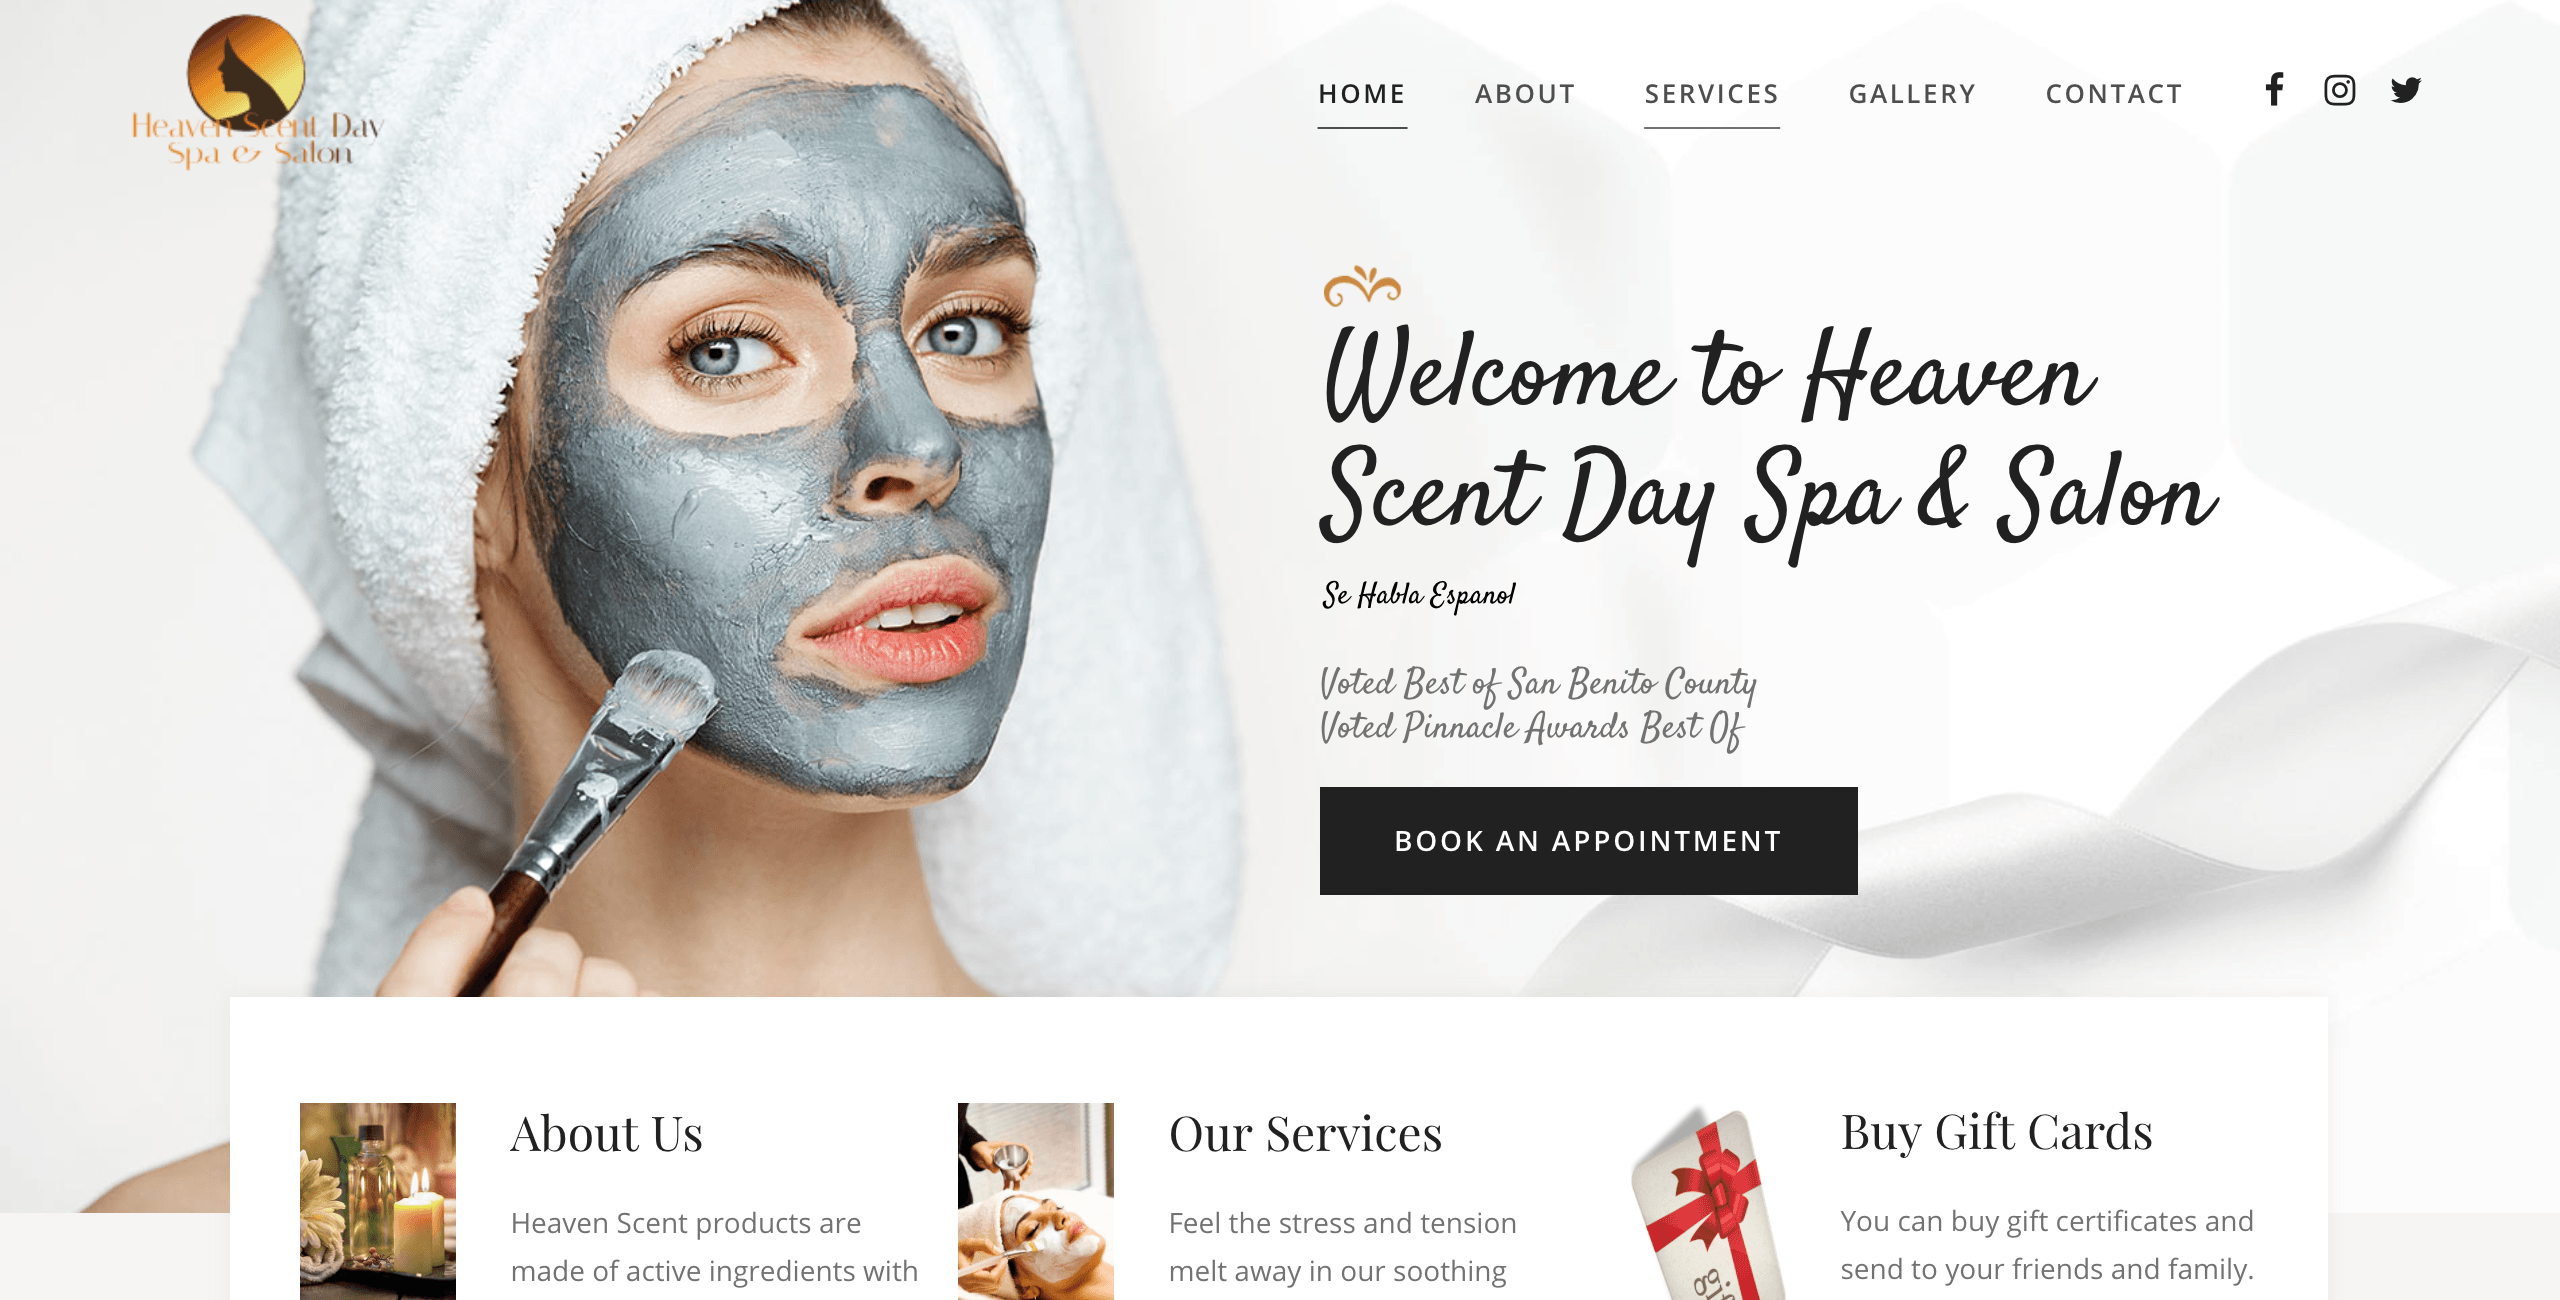 Heaven Scent Day Spa and Salon Website Design